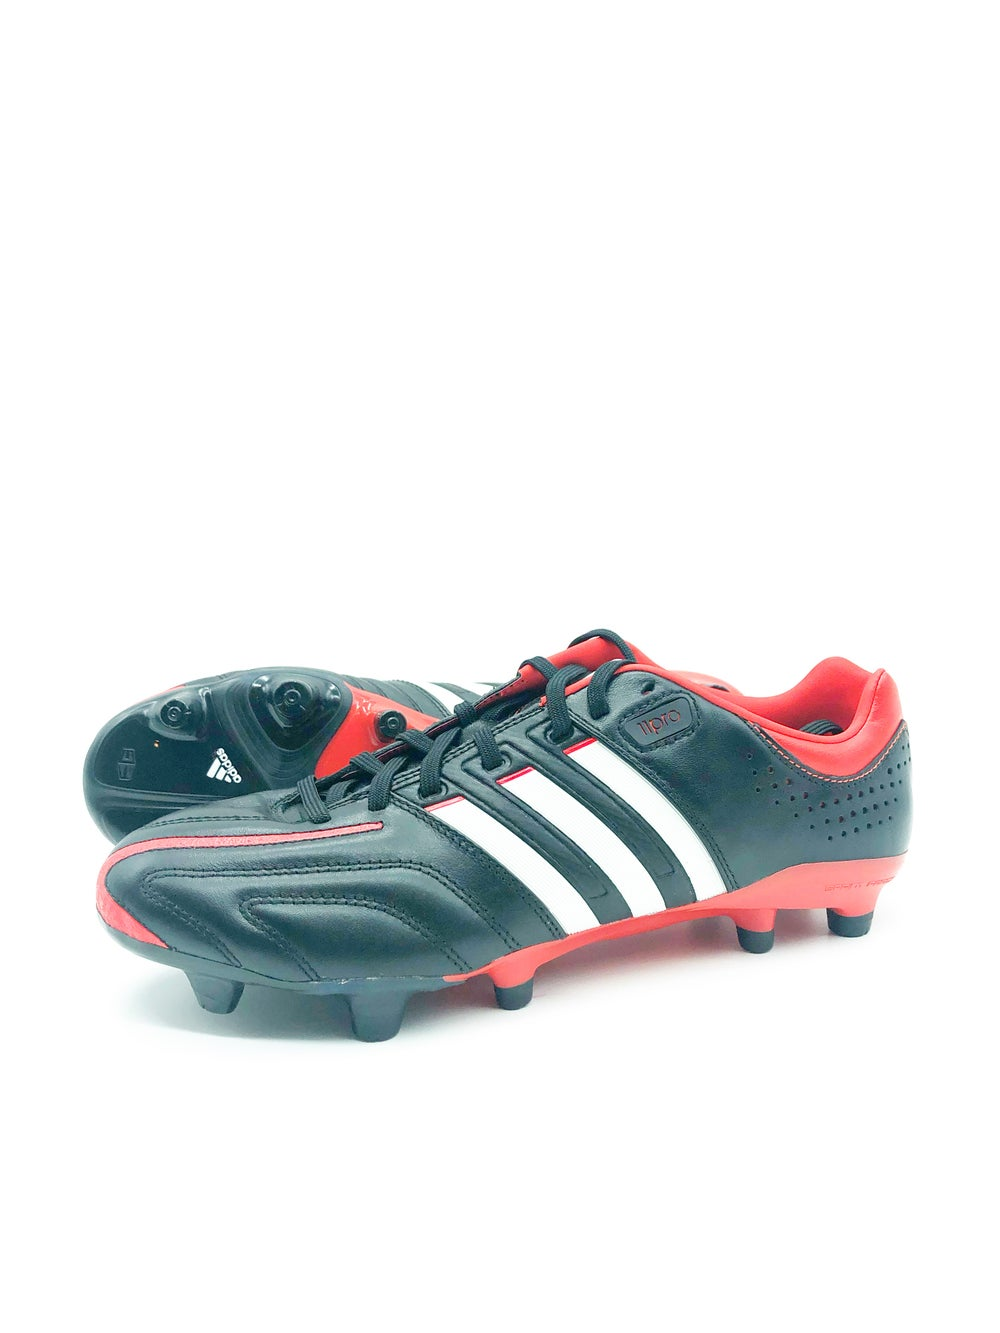 Image of Adidas 11pro Fg red black